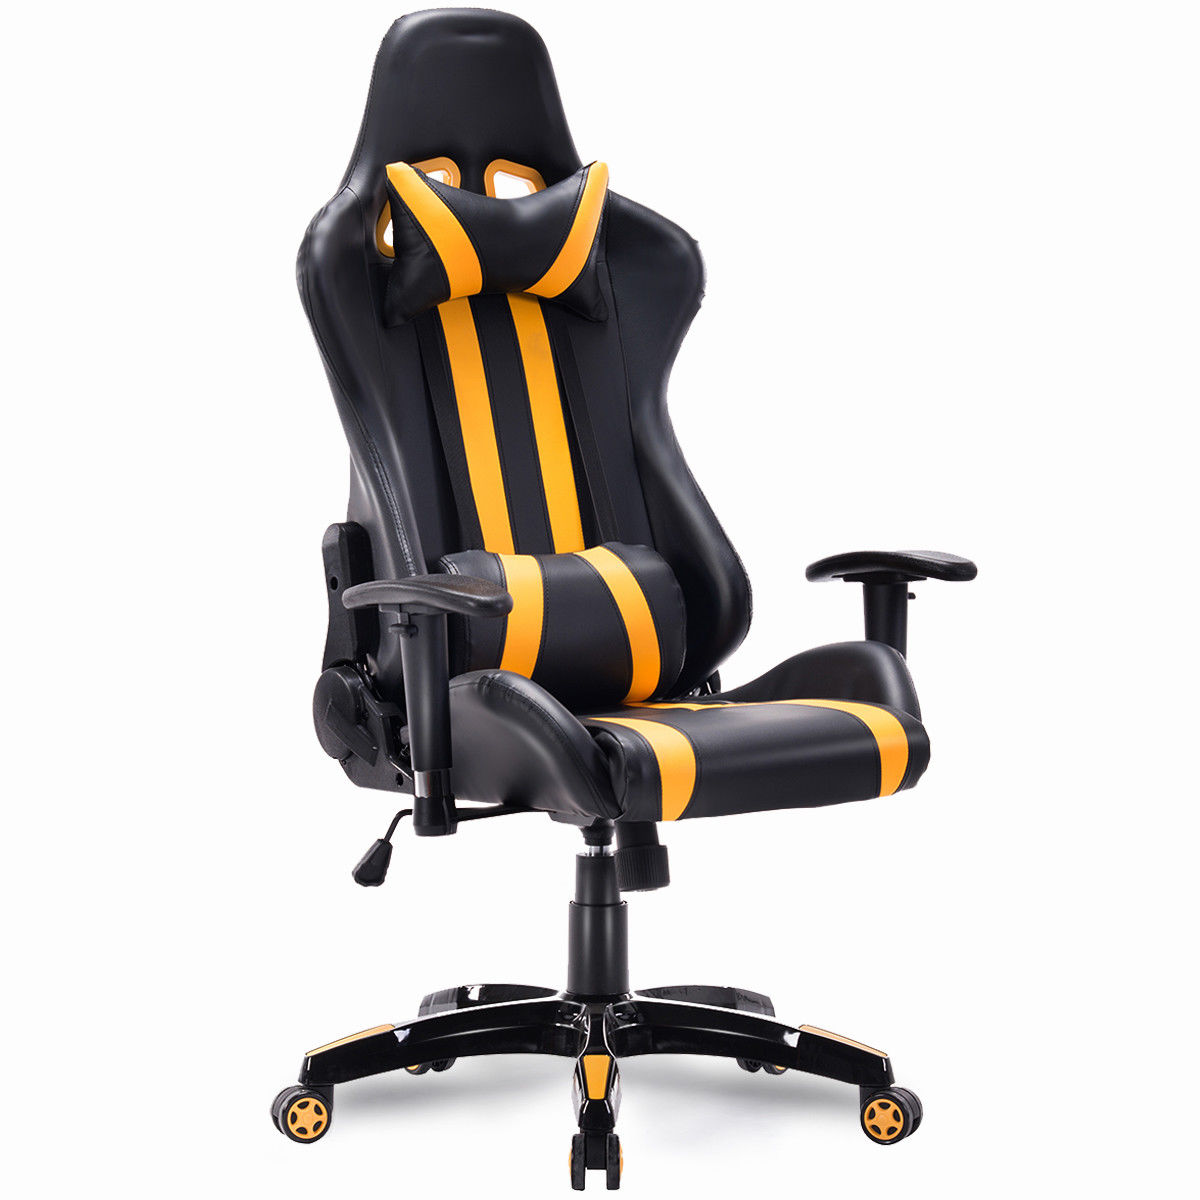 Giantex High Back Executive Racing Style Gaming Chair